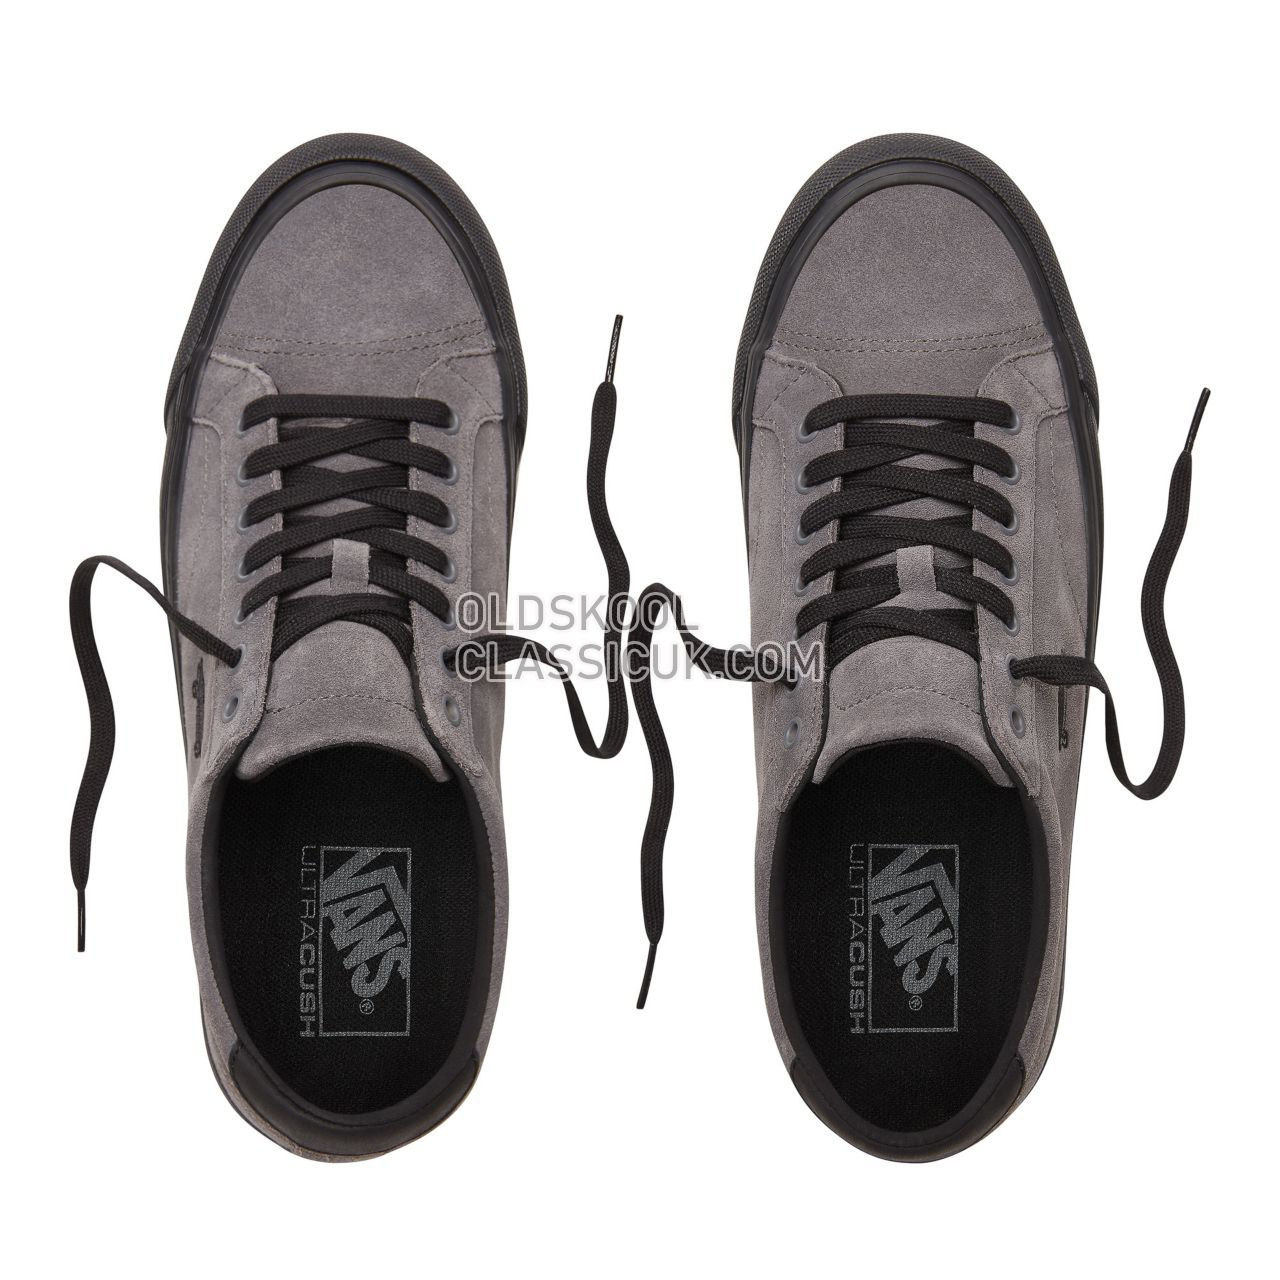 Vans Suede Court Icon Sneakers Mens (Suede) Pewter/Black VN0A3JF21UV Shoes